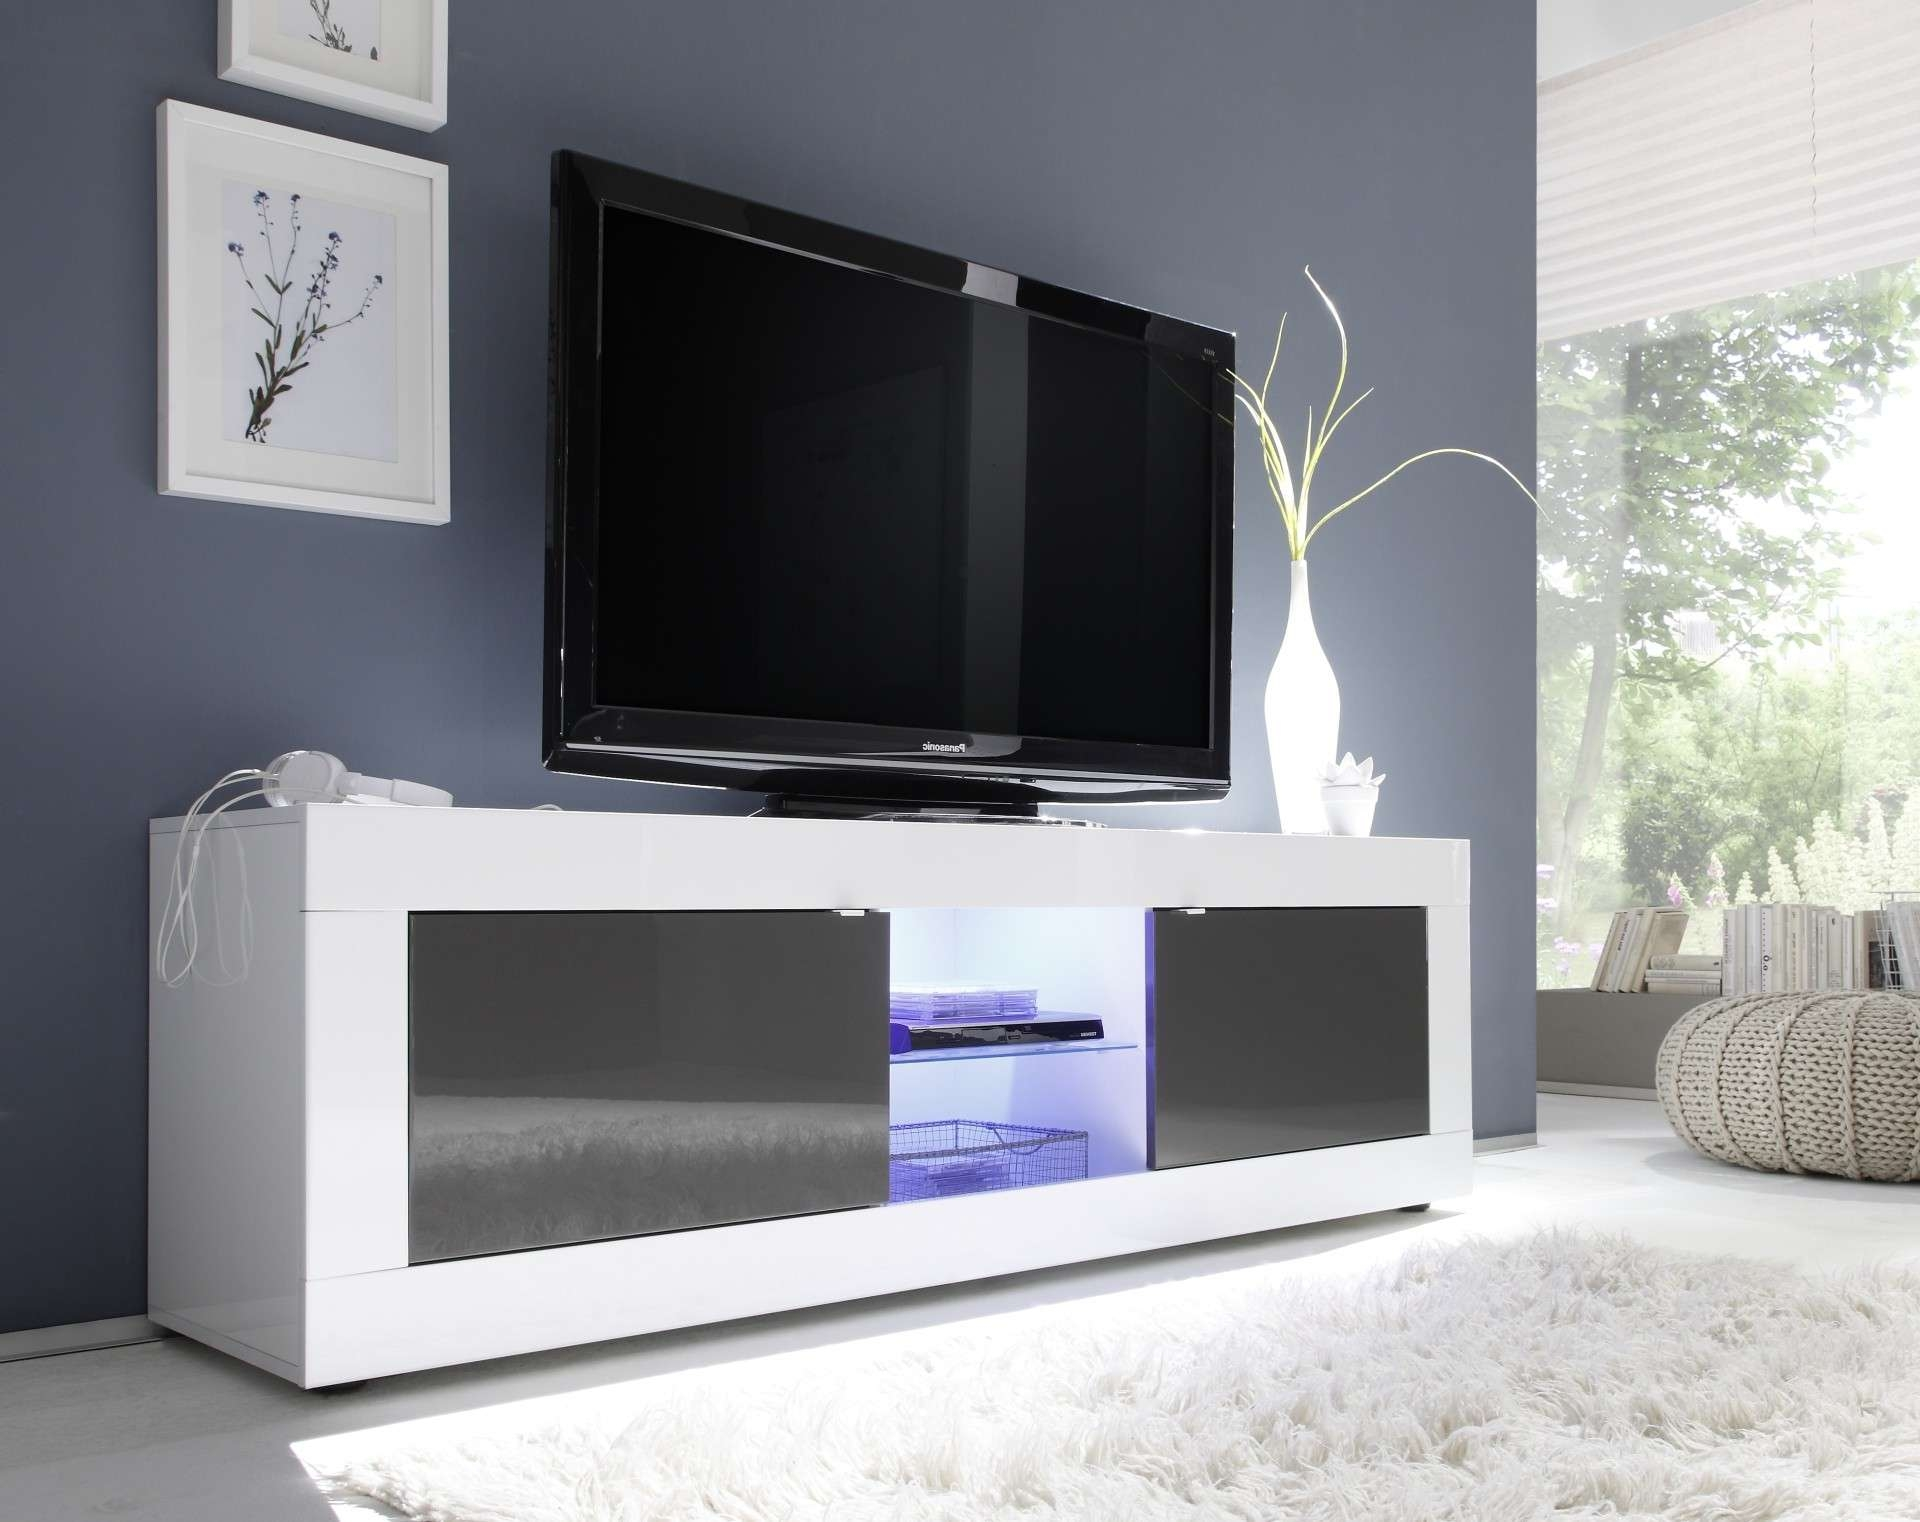 Fancy Tv Stands For 65 Inch Tvs 47 For Modern Home Decor With Regard To Fancy Tv Stands (View 5 of 15)